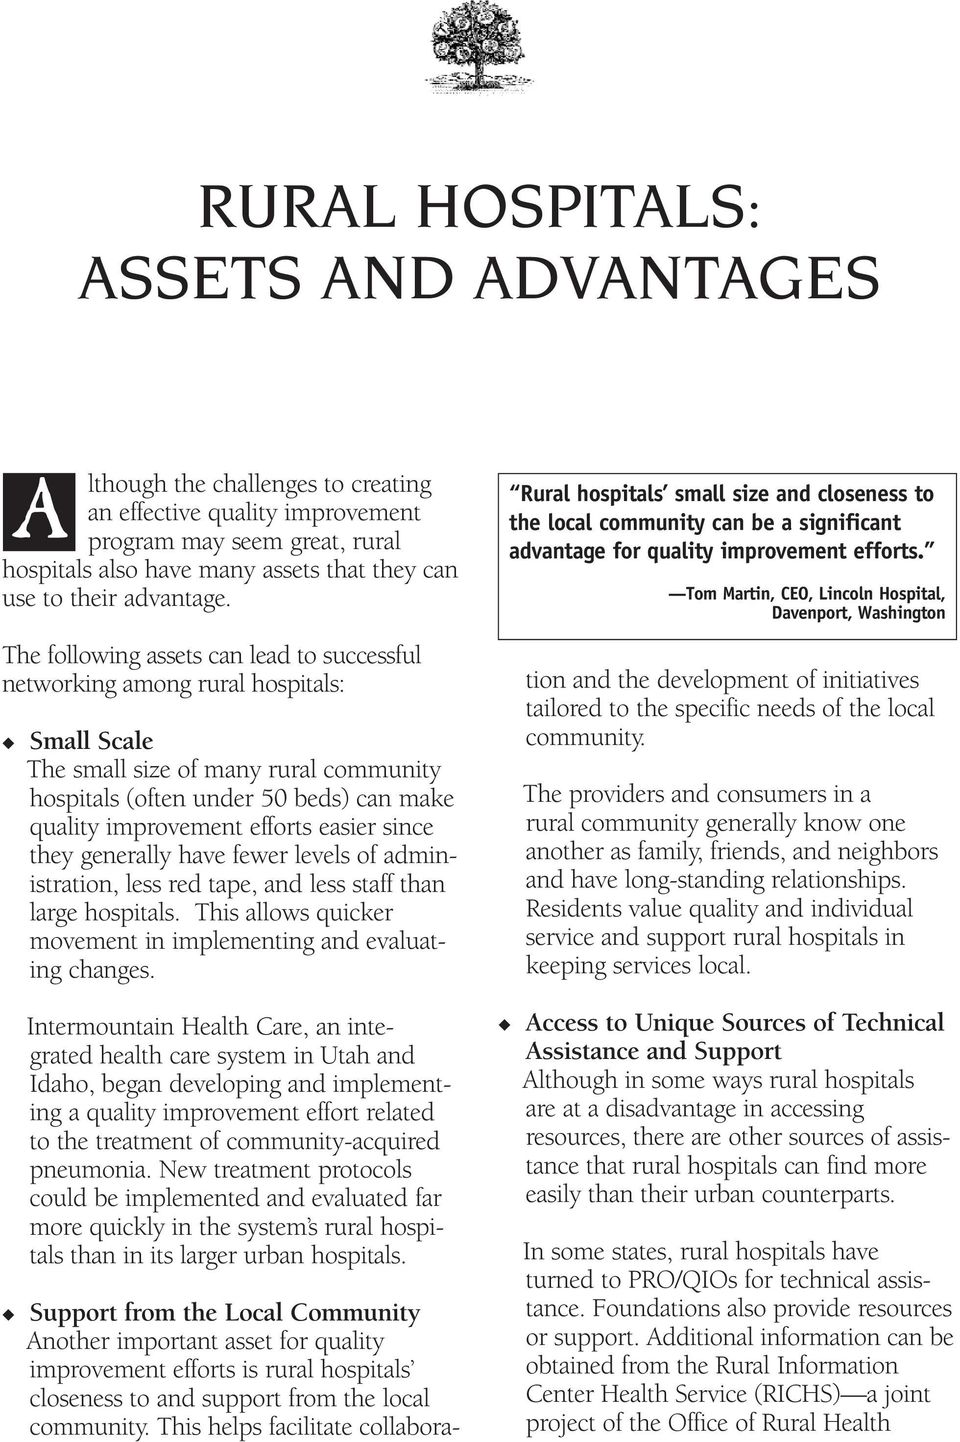 The following assets can lead to successful networking among rural hospitals: A Small Scale The small size of many rural community hospitals (often under 50 beds) can make quality improvement efforts